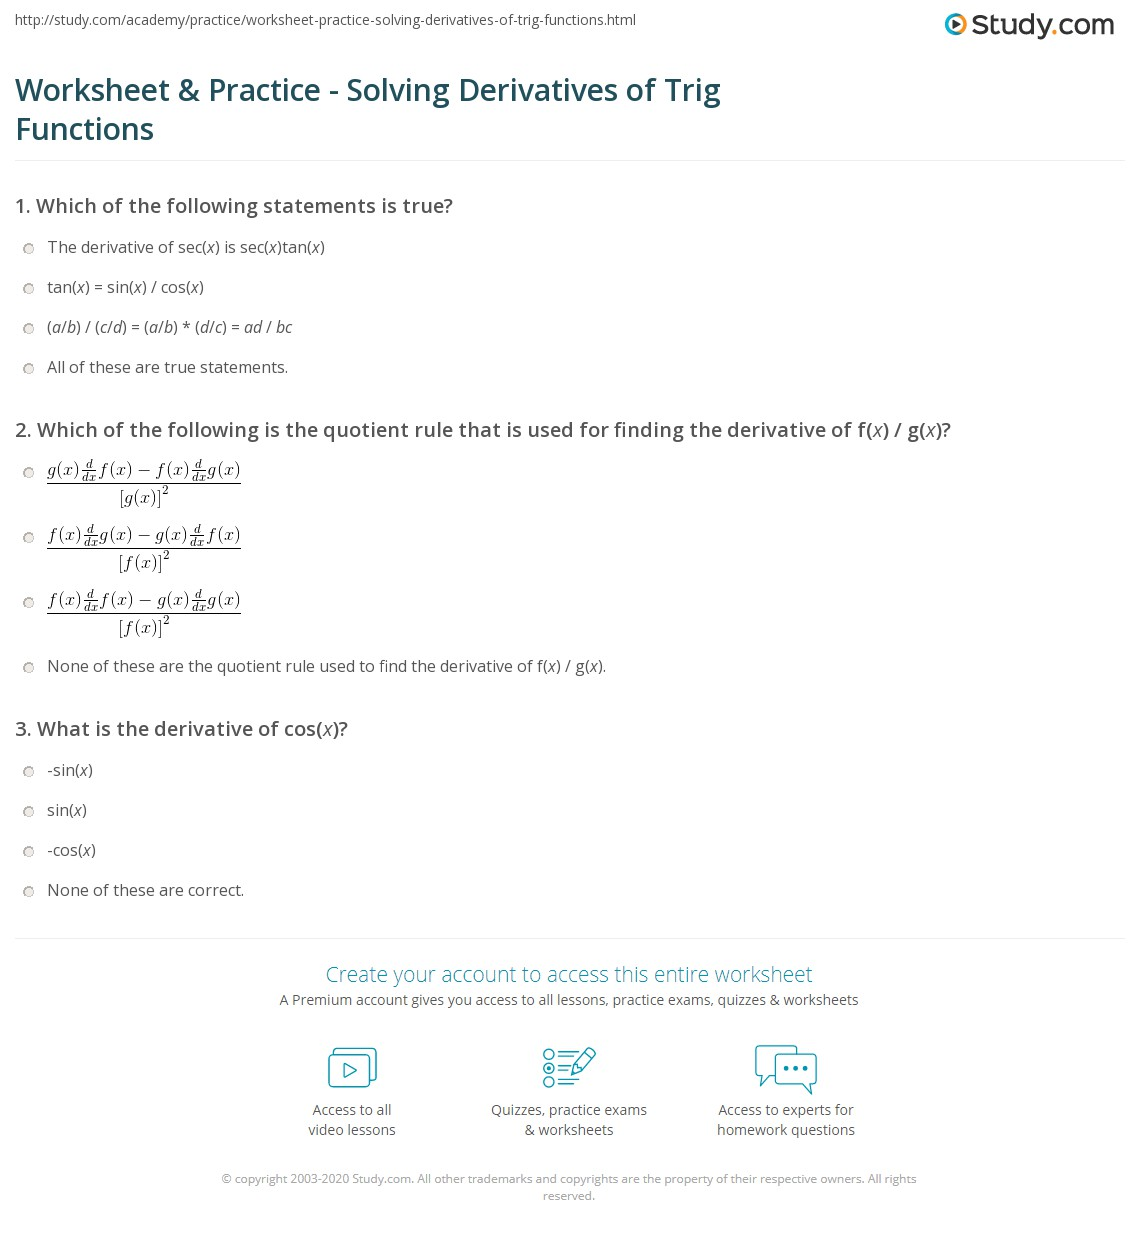 Worksheet Practice Solving Derivatives of Trig Functions – Derivative Practice Worksheet